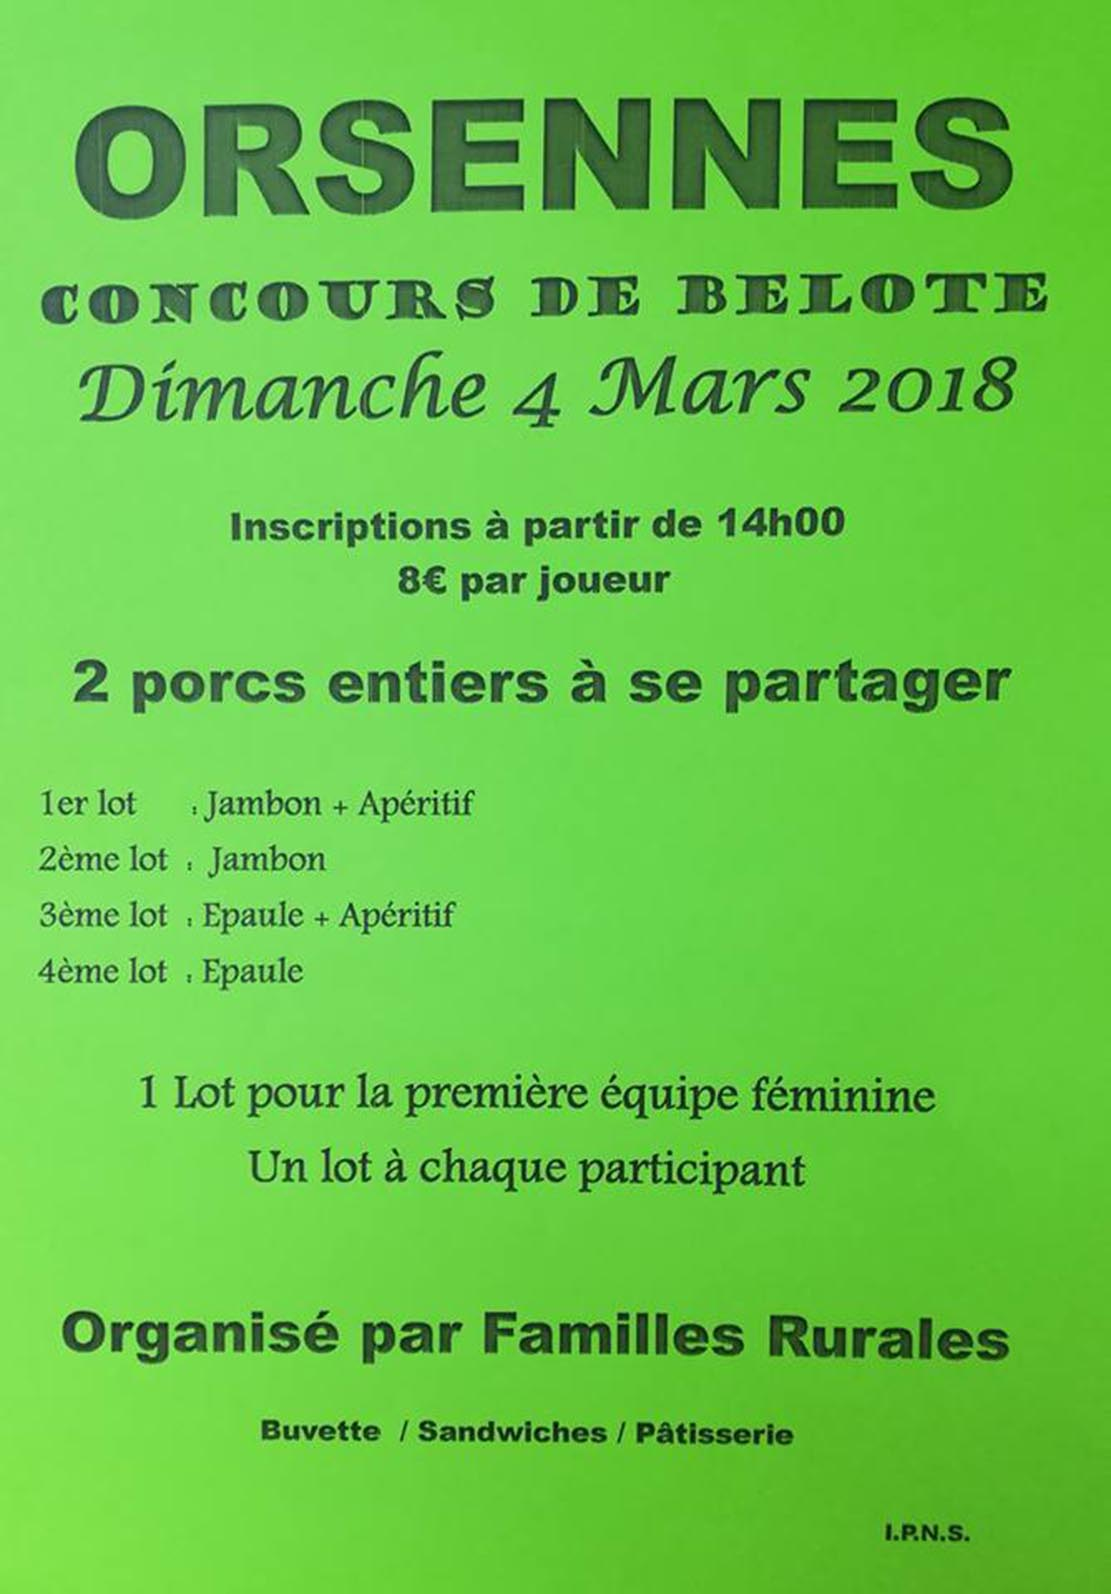 concours_belote_orsennes